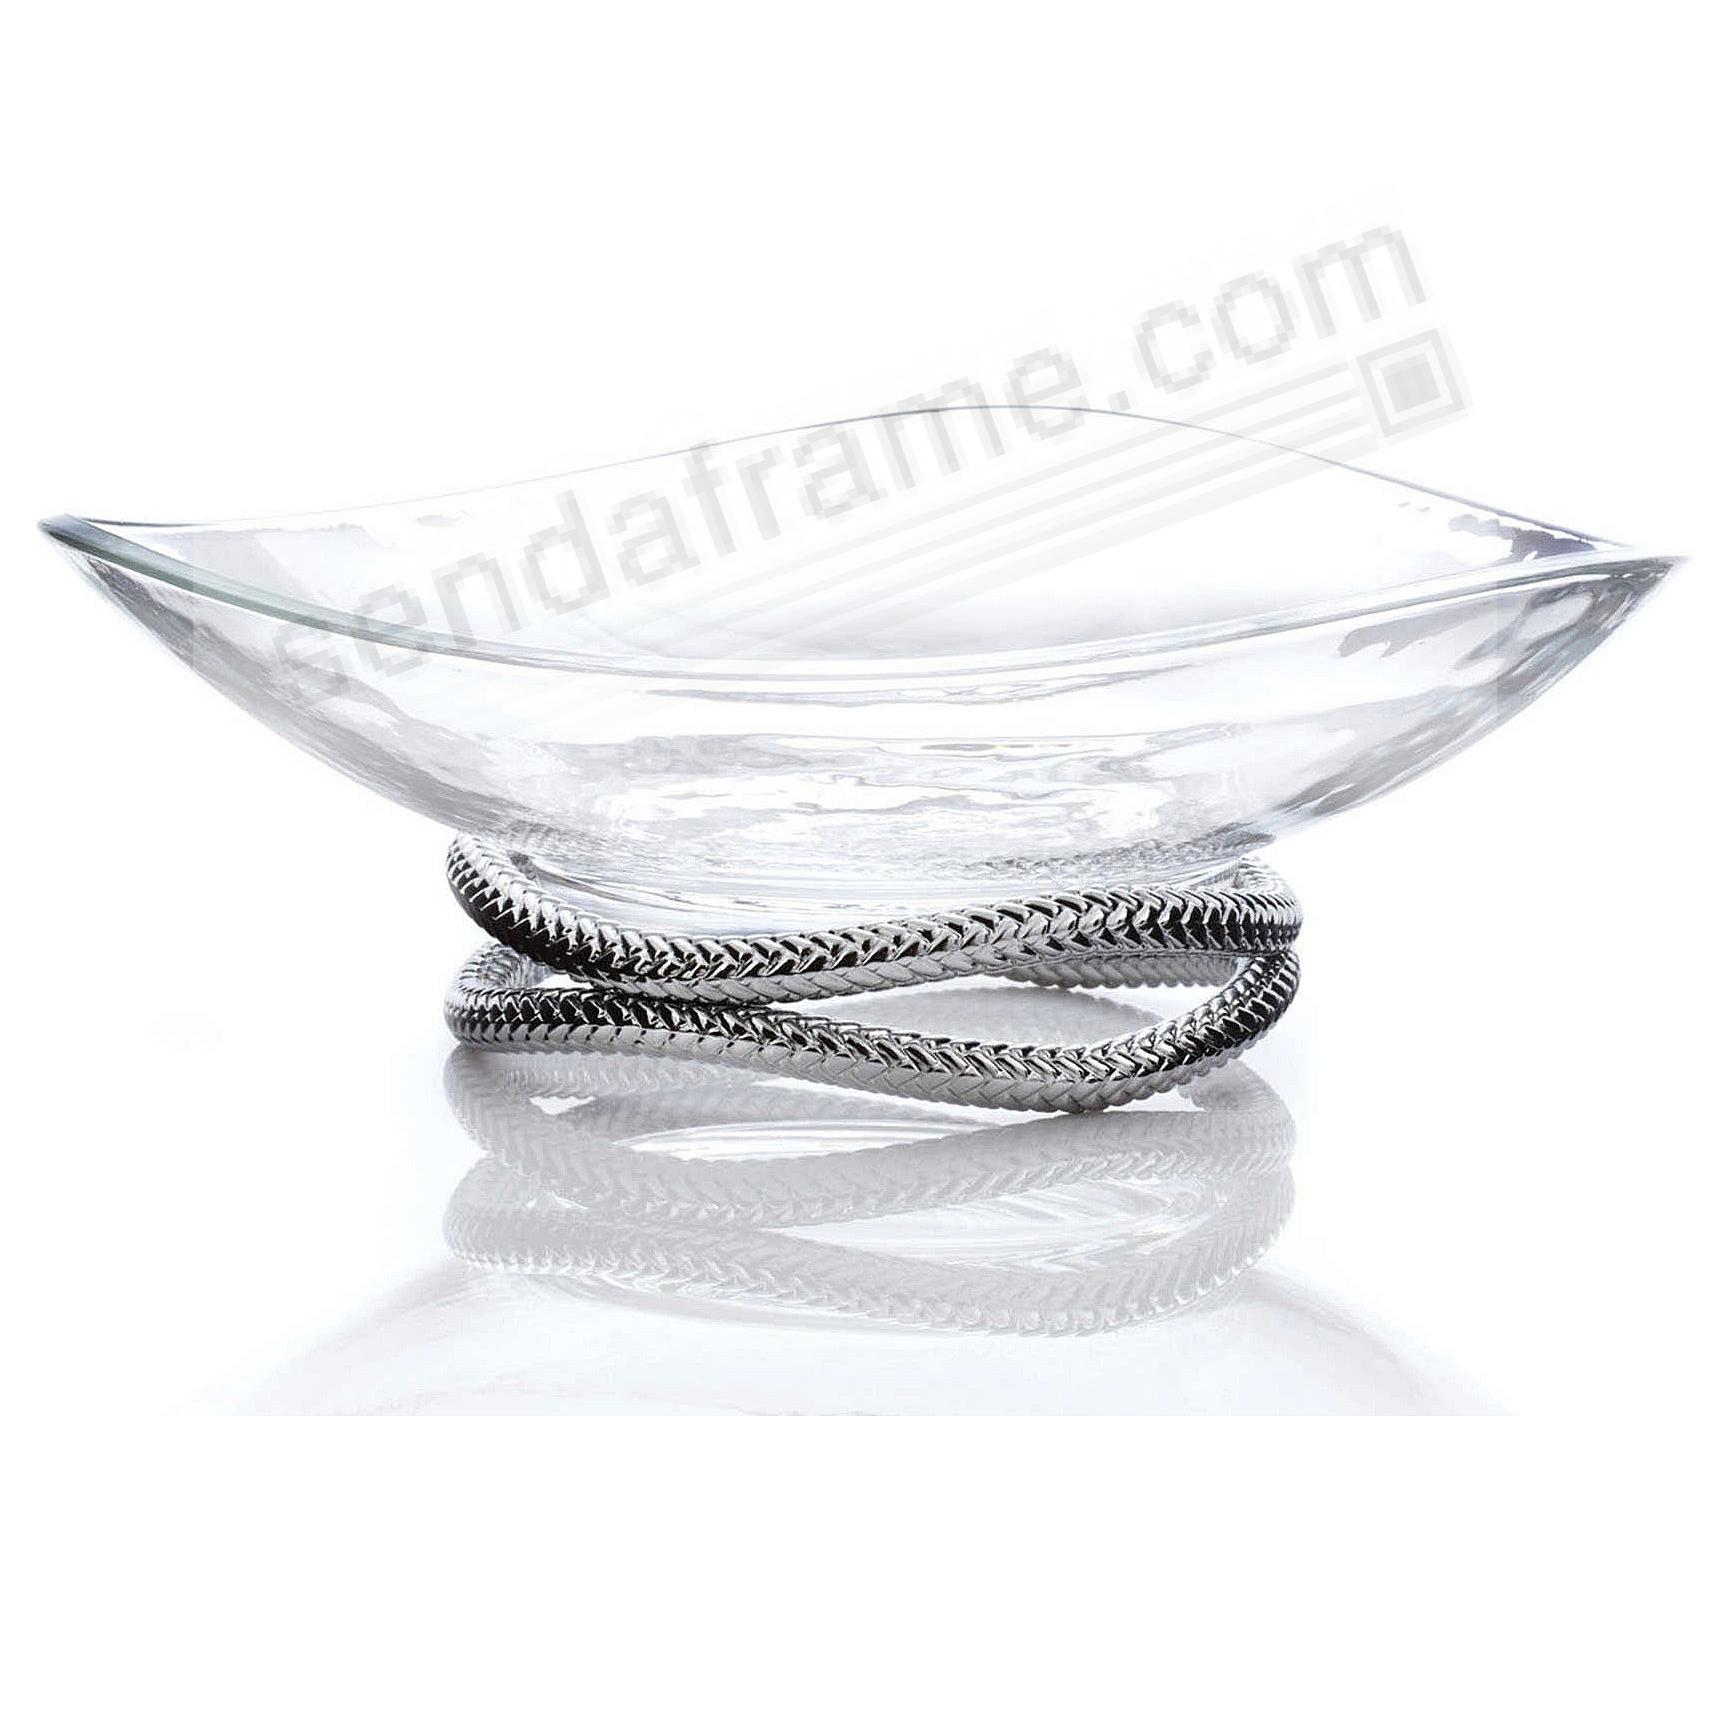 The Original BRAID CENTERPIECE BOWL crafted by Nambe®